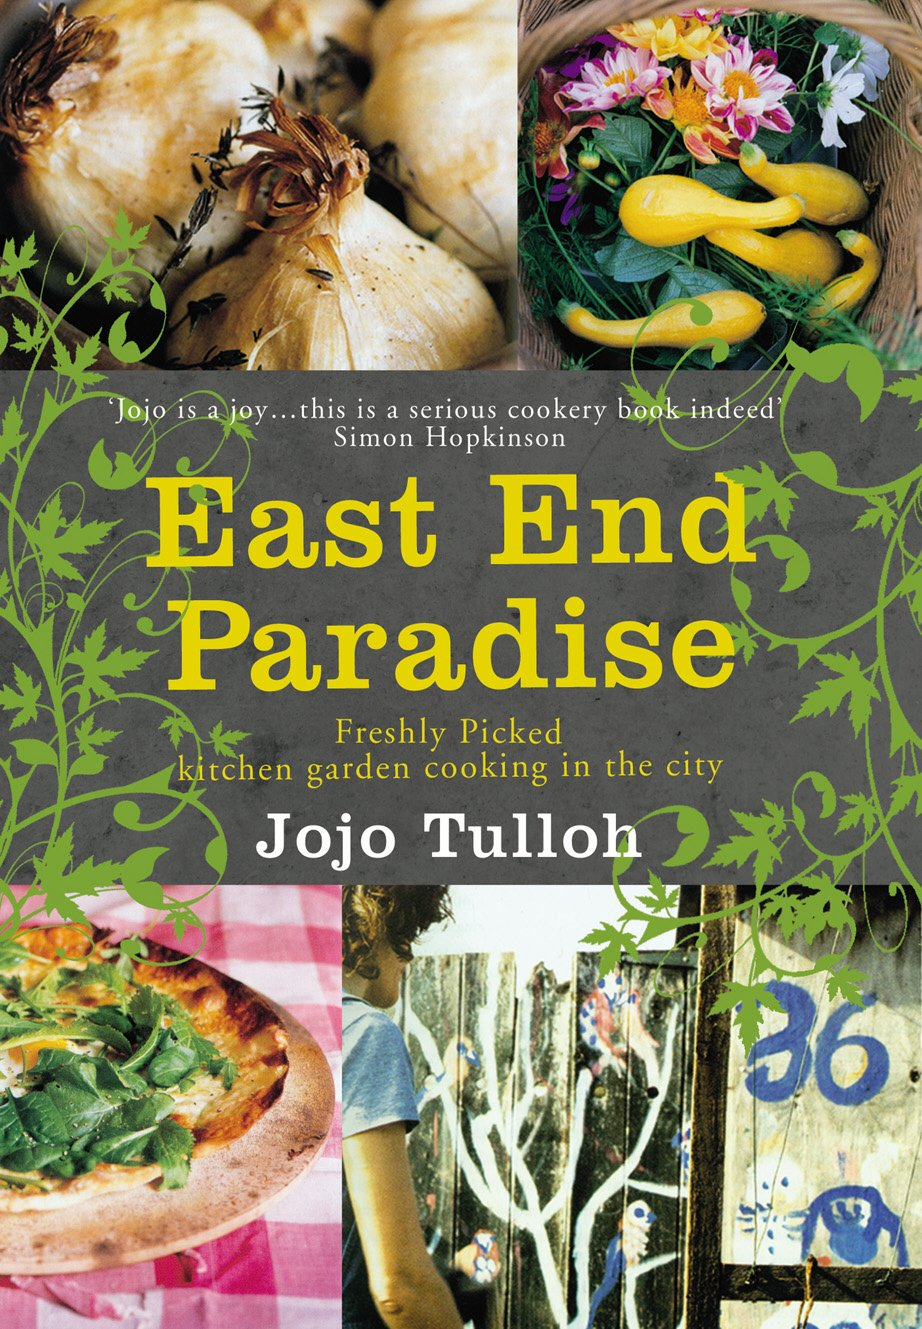 East End Paradise: Kitchen Garden Cooking in the City: Jojo ...